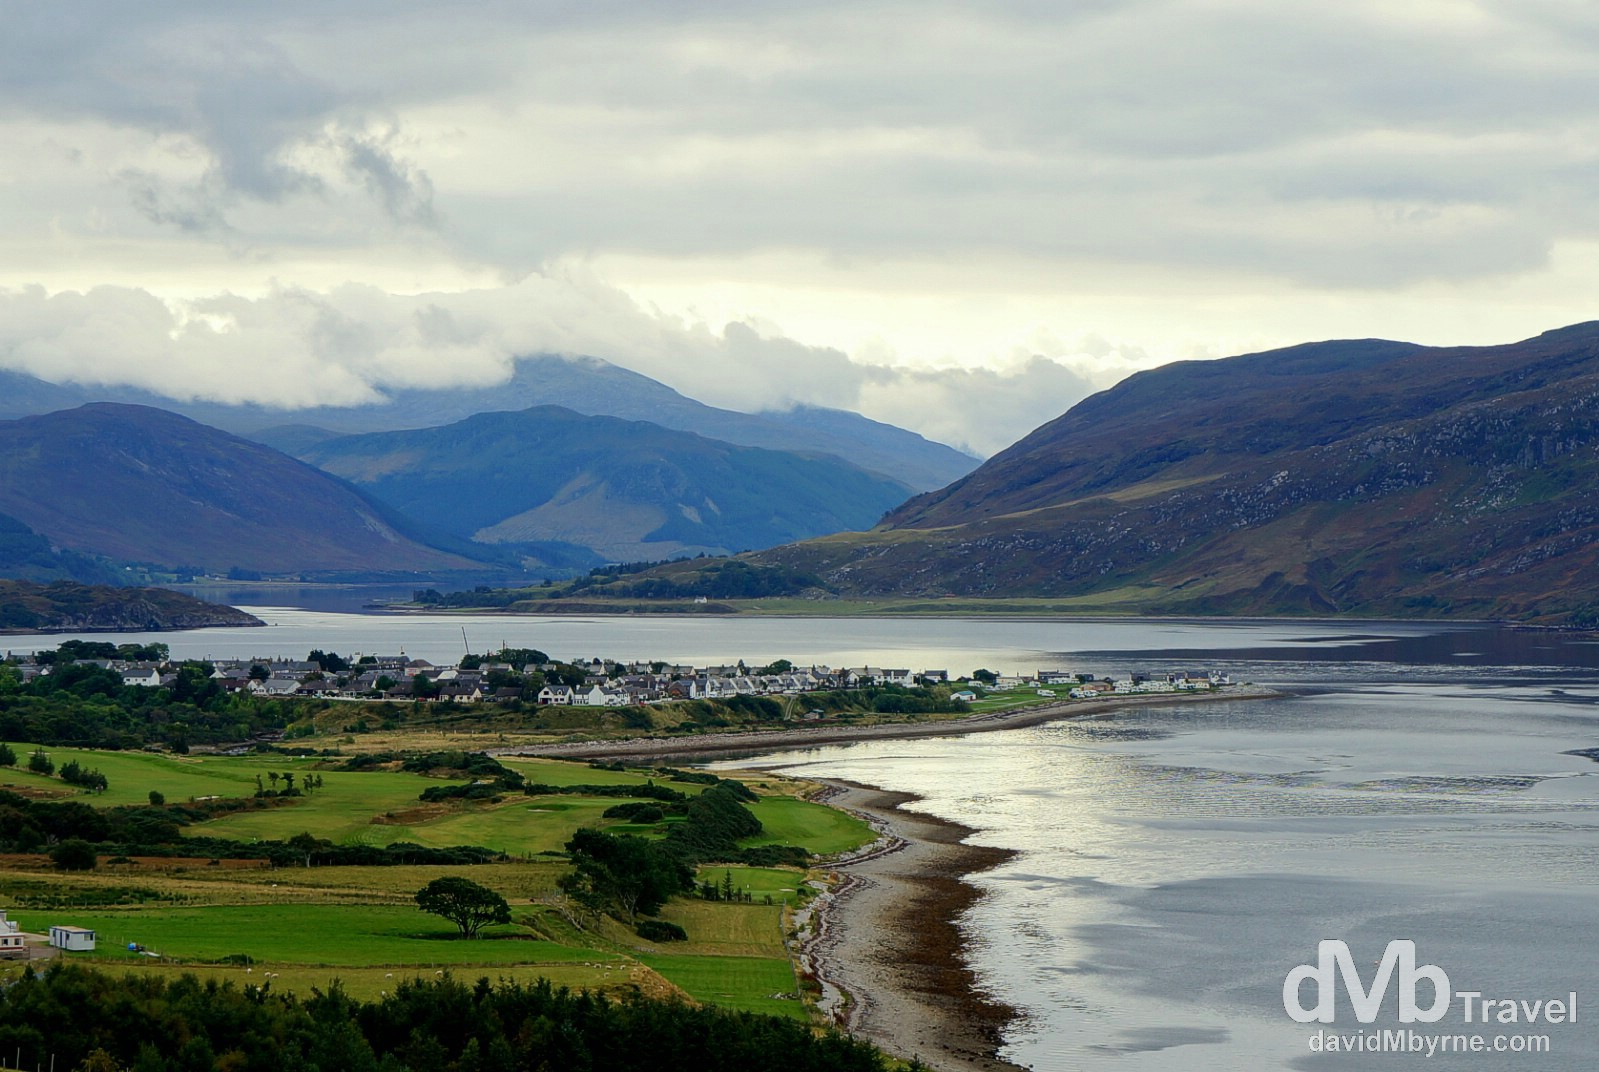 The town of Ullapool on the eastern shore of Lock Broom as seen from the A835 entering town. Highlands, Scotland. September 16, 2014.